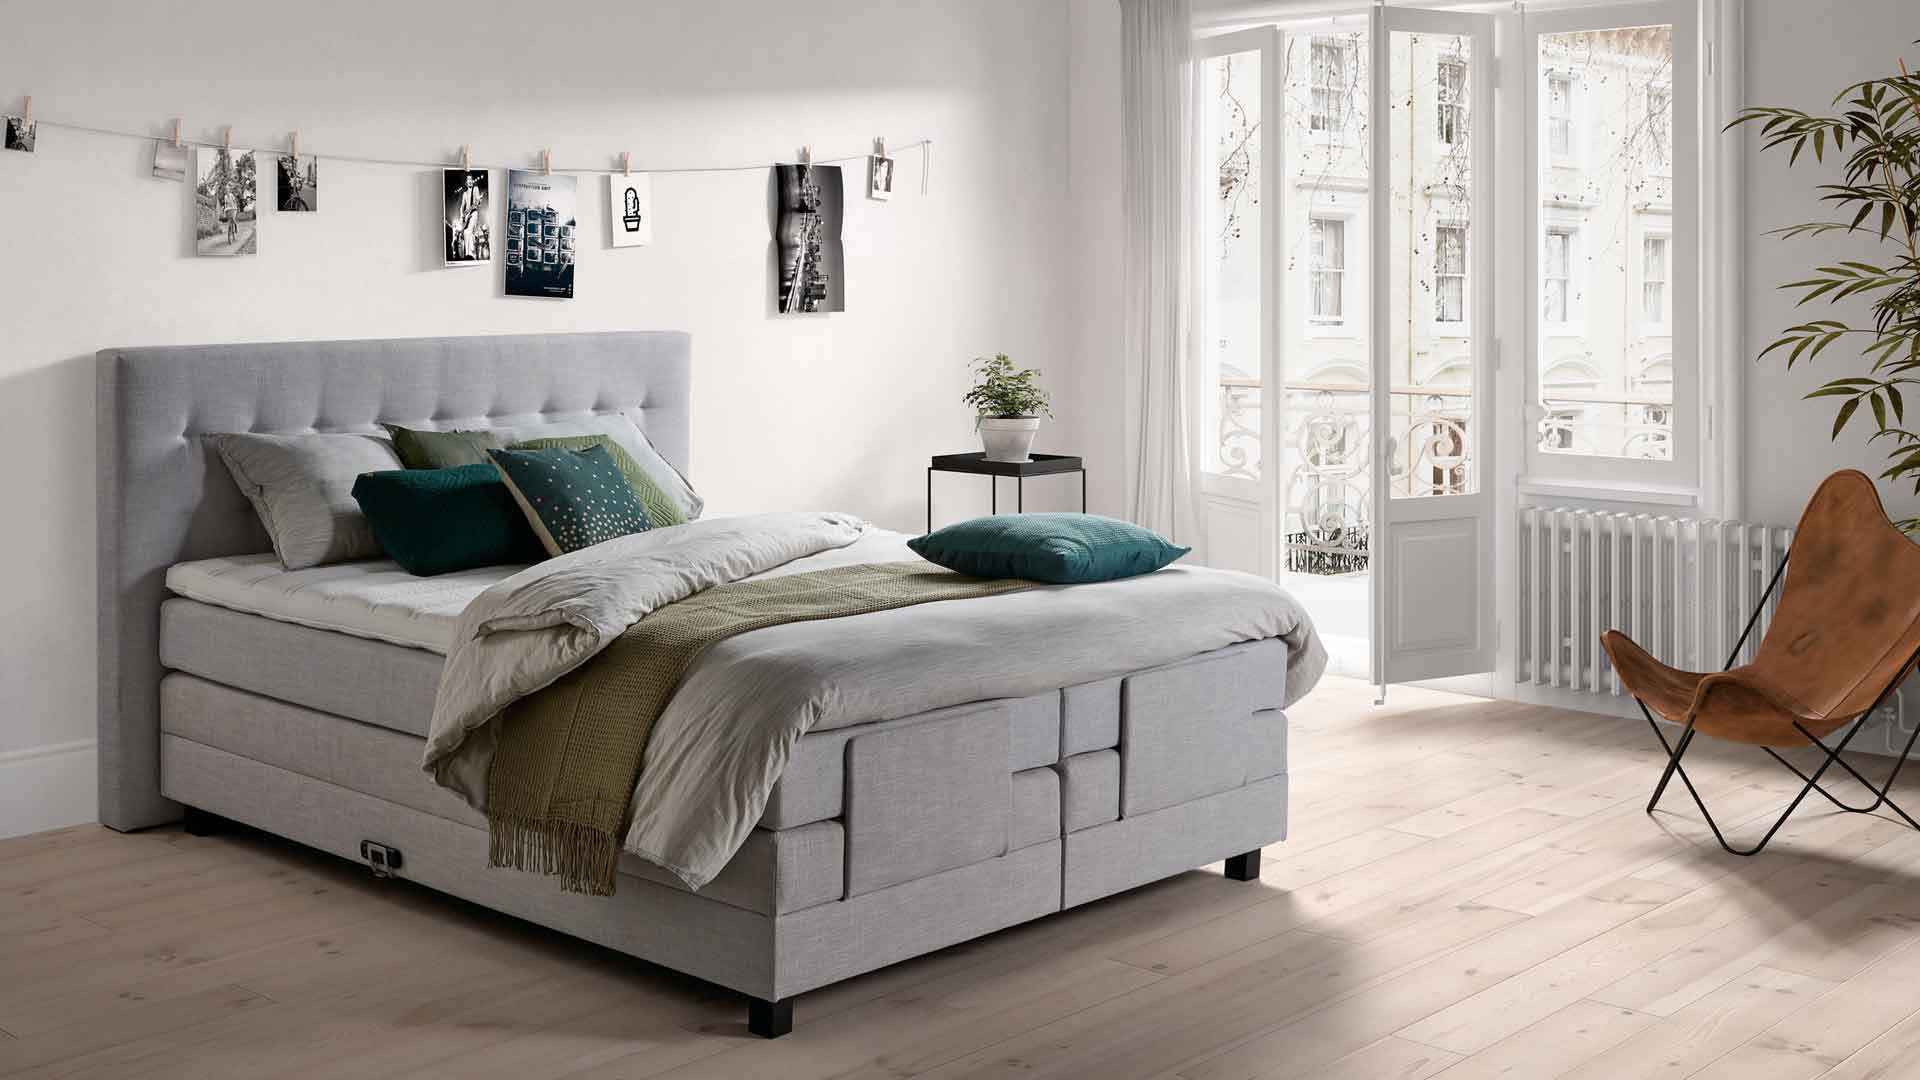 betten hoenscheidt boxspringbetten konfigurator1 betten h nscheidt. Black Bedroom Furniture Sets. Home Design Ideas